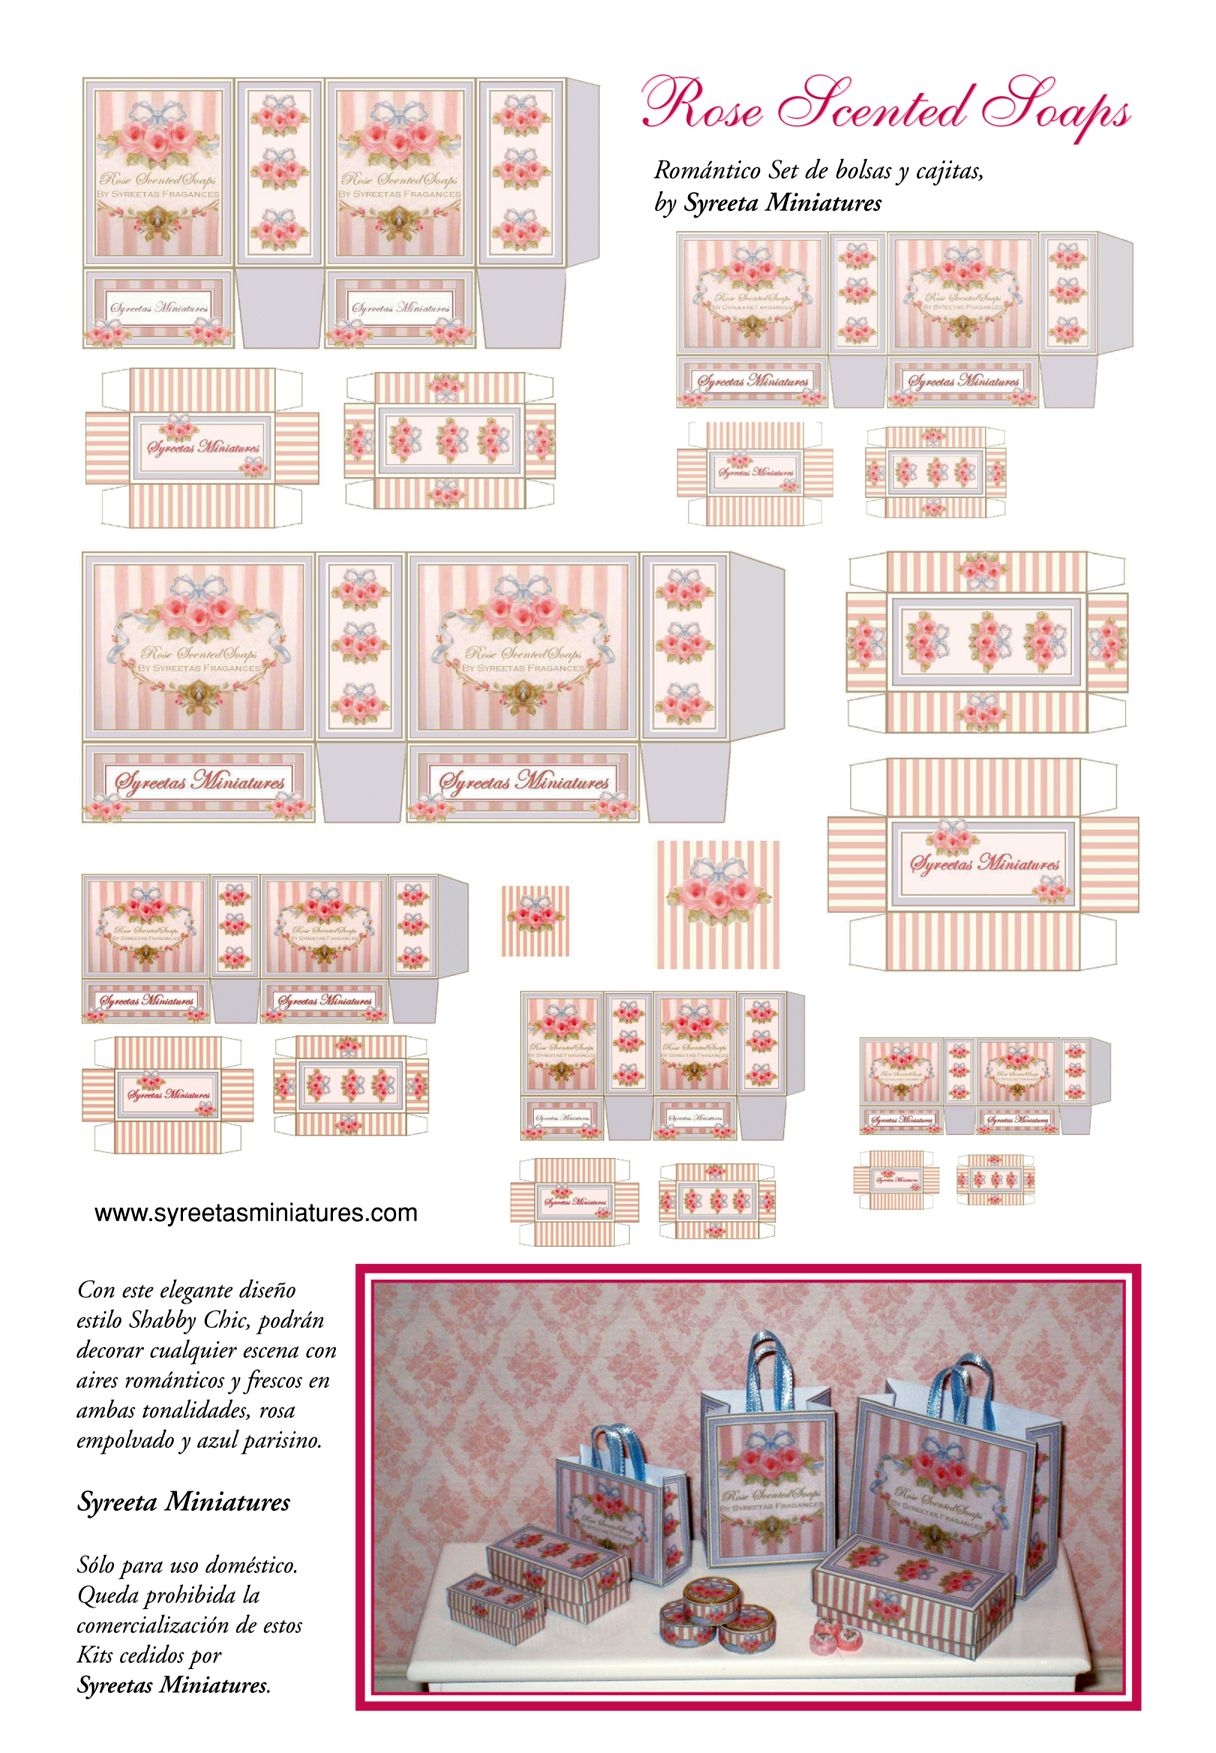 Printable Dollhouse Furniture Patterns Miniature Printables Rose Scented Soap Bags And Boxes